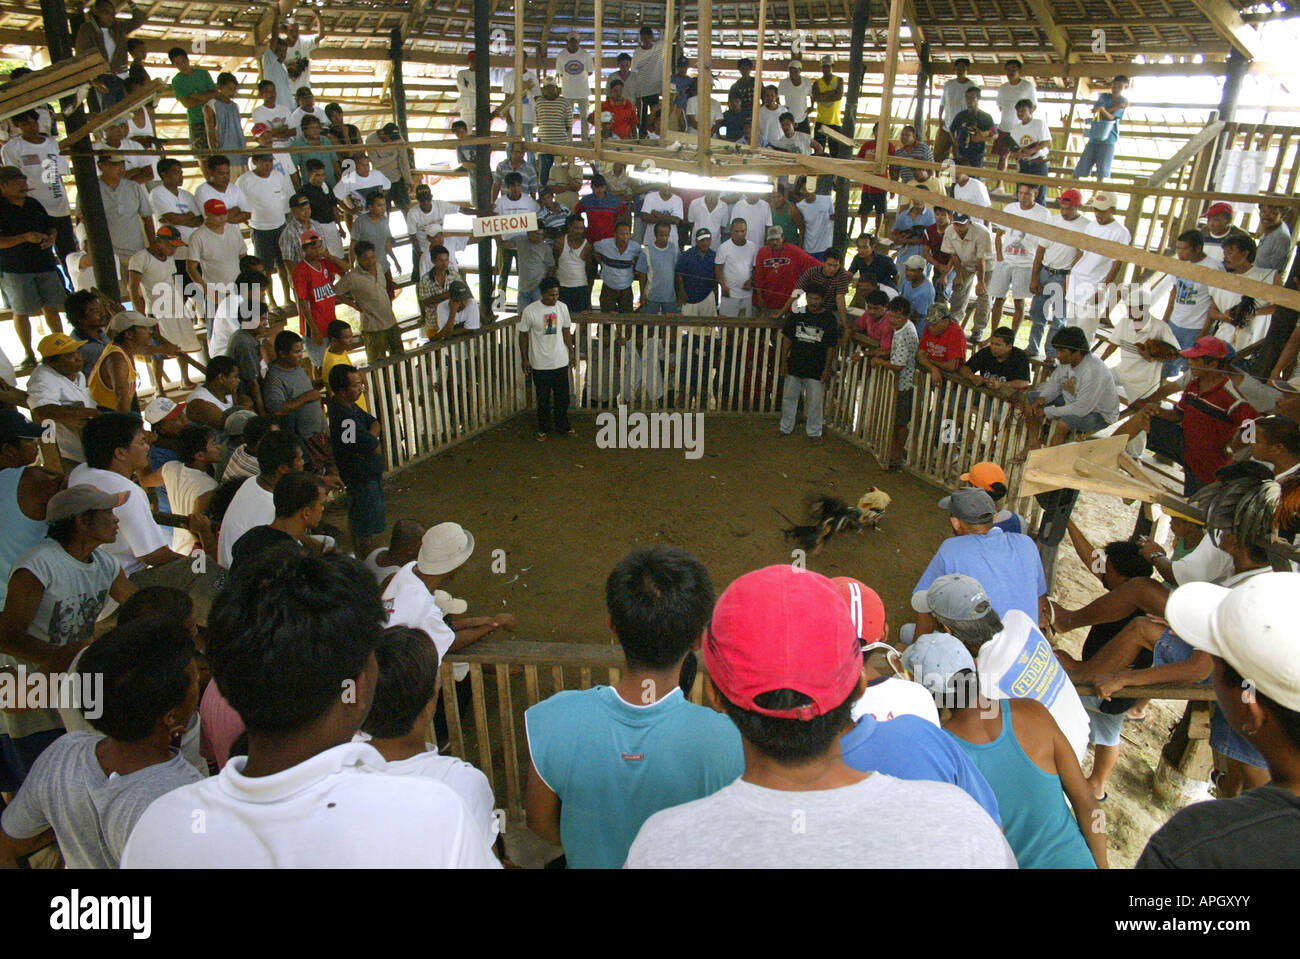 Filipinos watch a cockfighting bout at a rural cockhouse in Oriental Mindoro, Philippines. Stock Photo